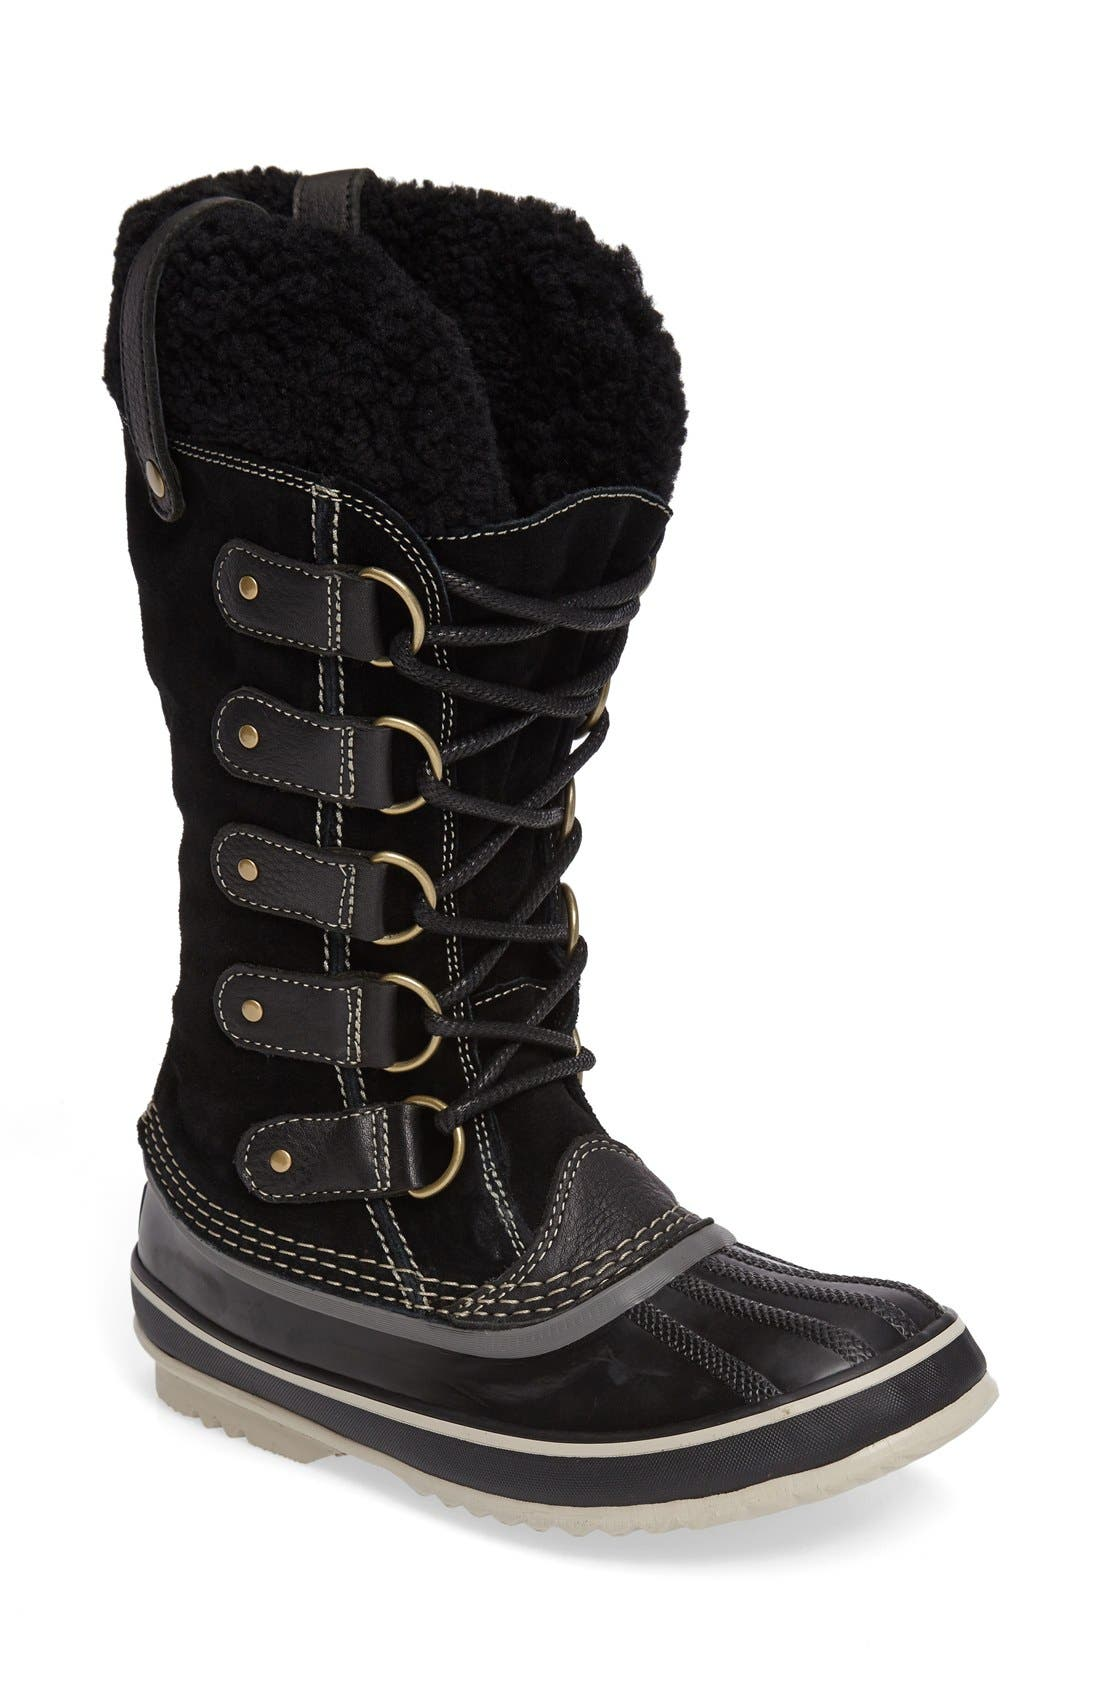 Alternate Image 1 Selected - SOREL Joan of Arctic Genuine Shearling Waterproof Boot (Women)